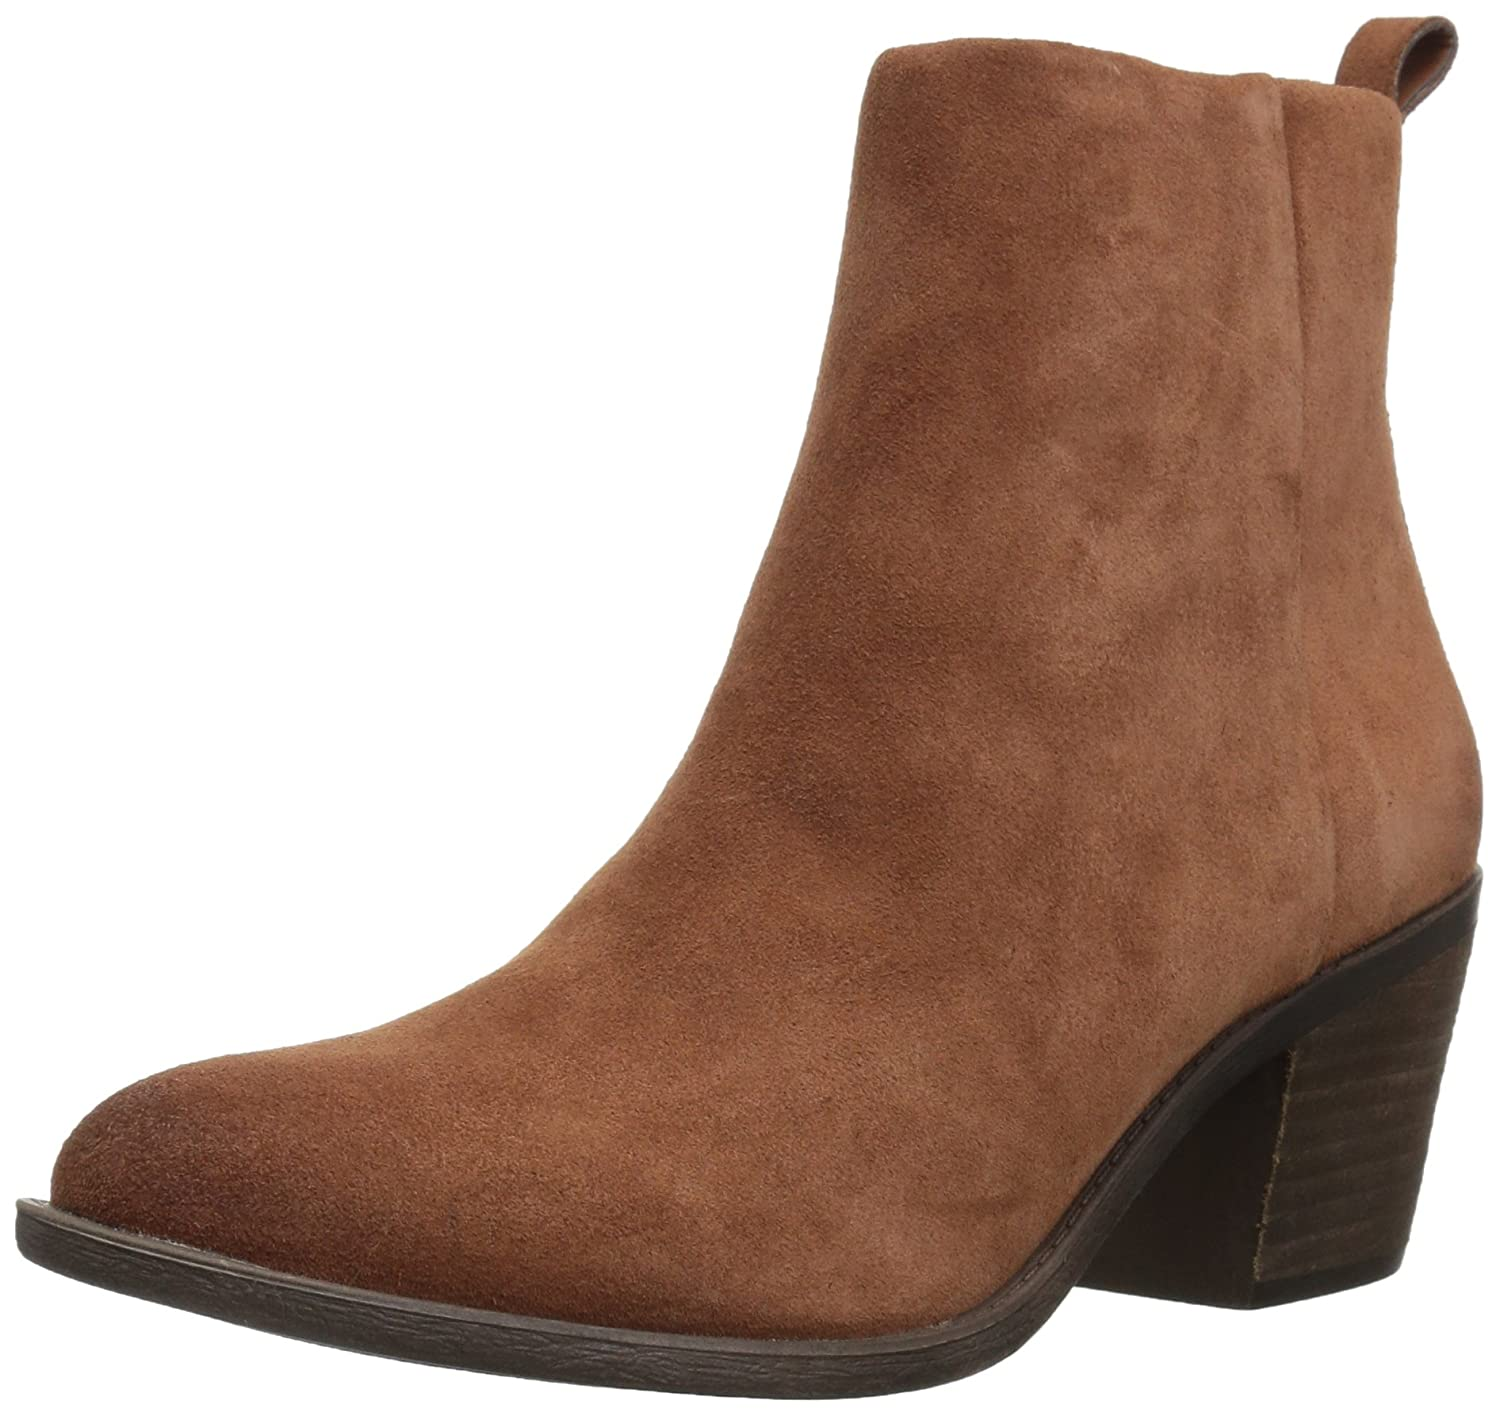 Lucky Brand Women's Natania Ankle Boot B0722LWP7S 6 M US|Toffee